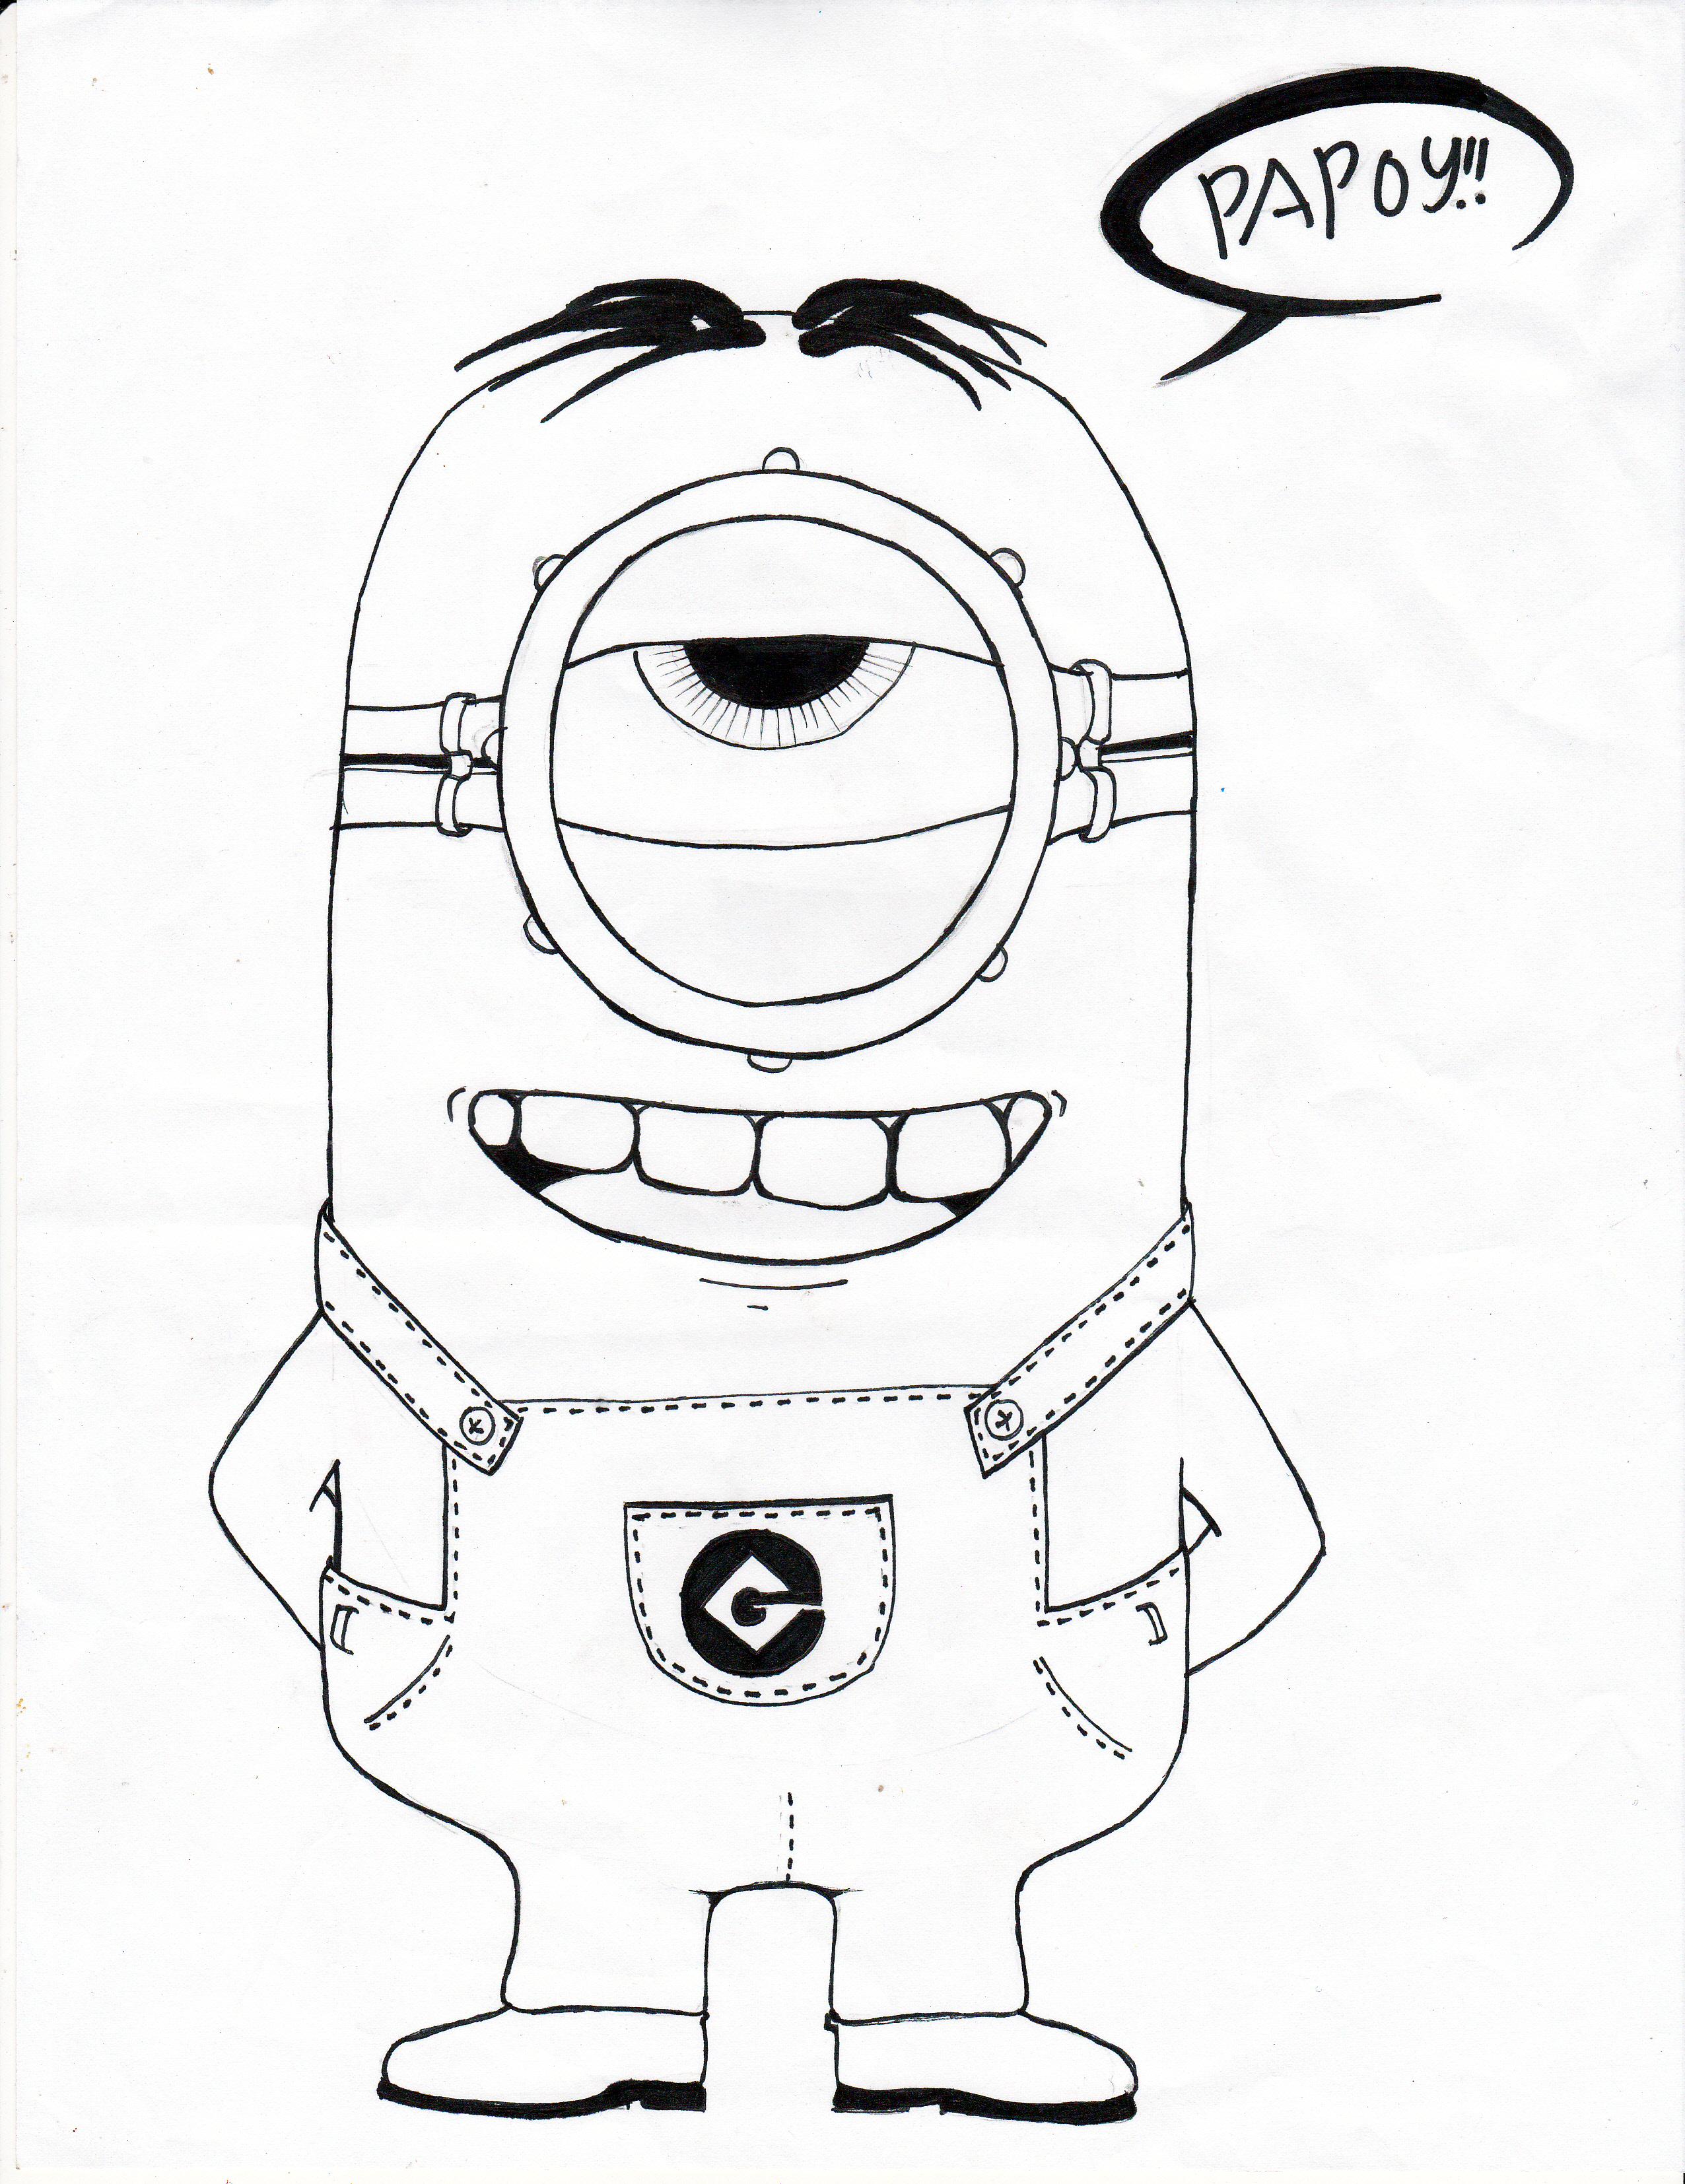 Despicable Me Minion Cartoon Drawings